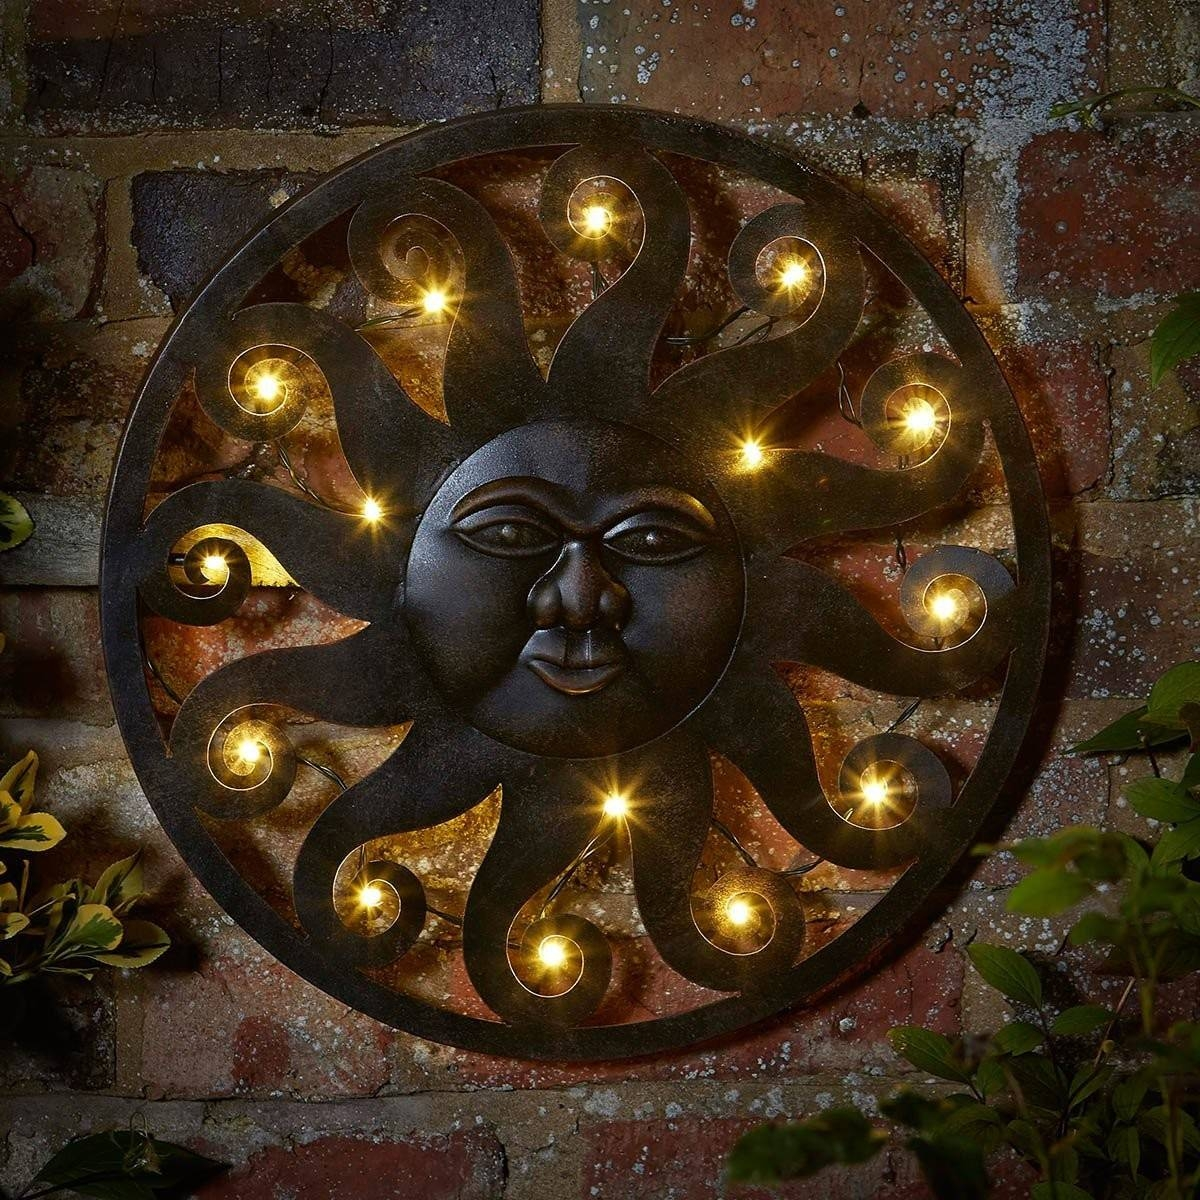 Chic Outdoor Metal Sun Wall Art Decor Large Copper Patina Sun Intended For Most Current Copper Outdoor Wall Art (View 2 of 13)